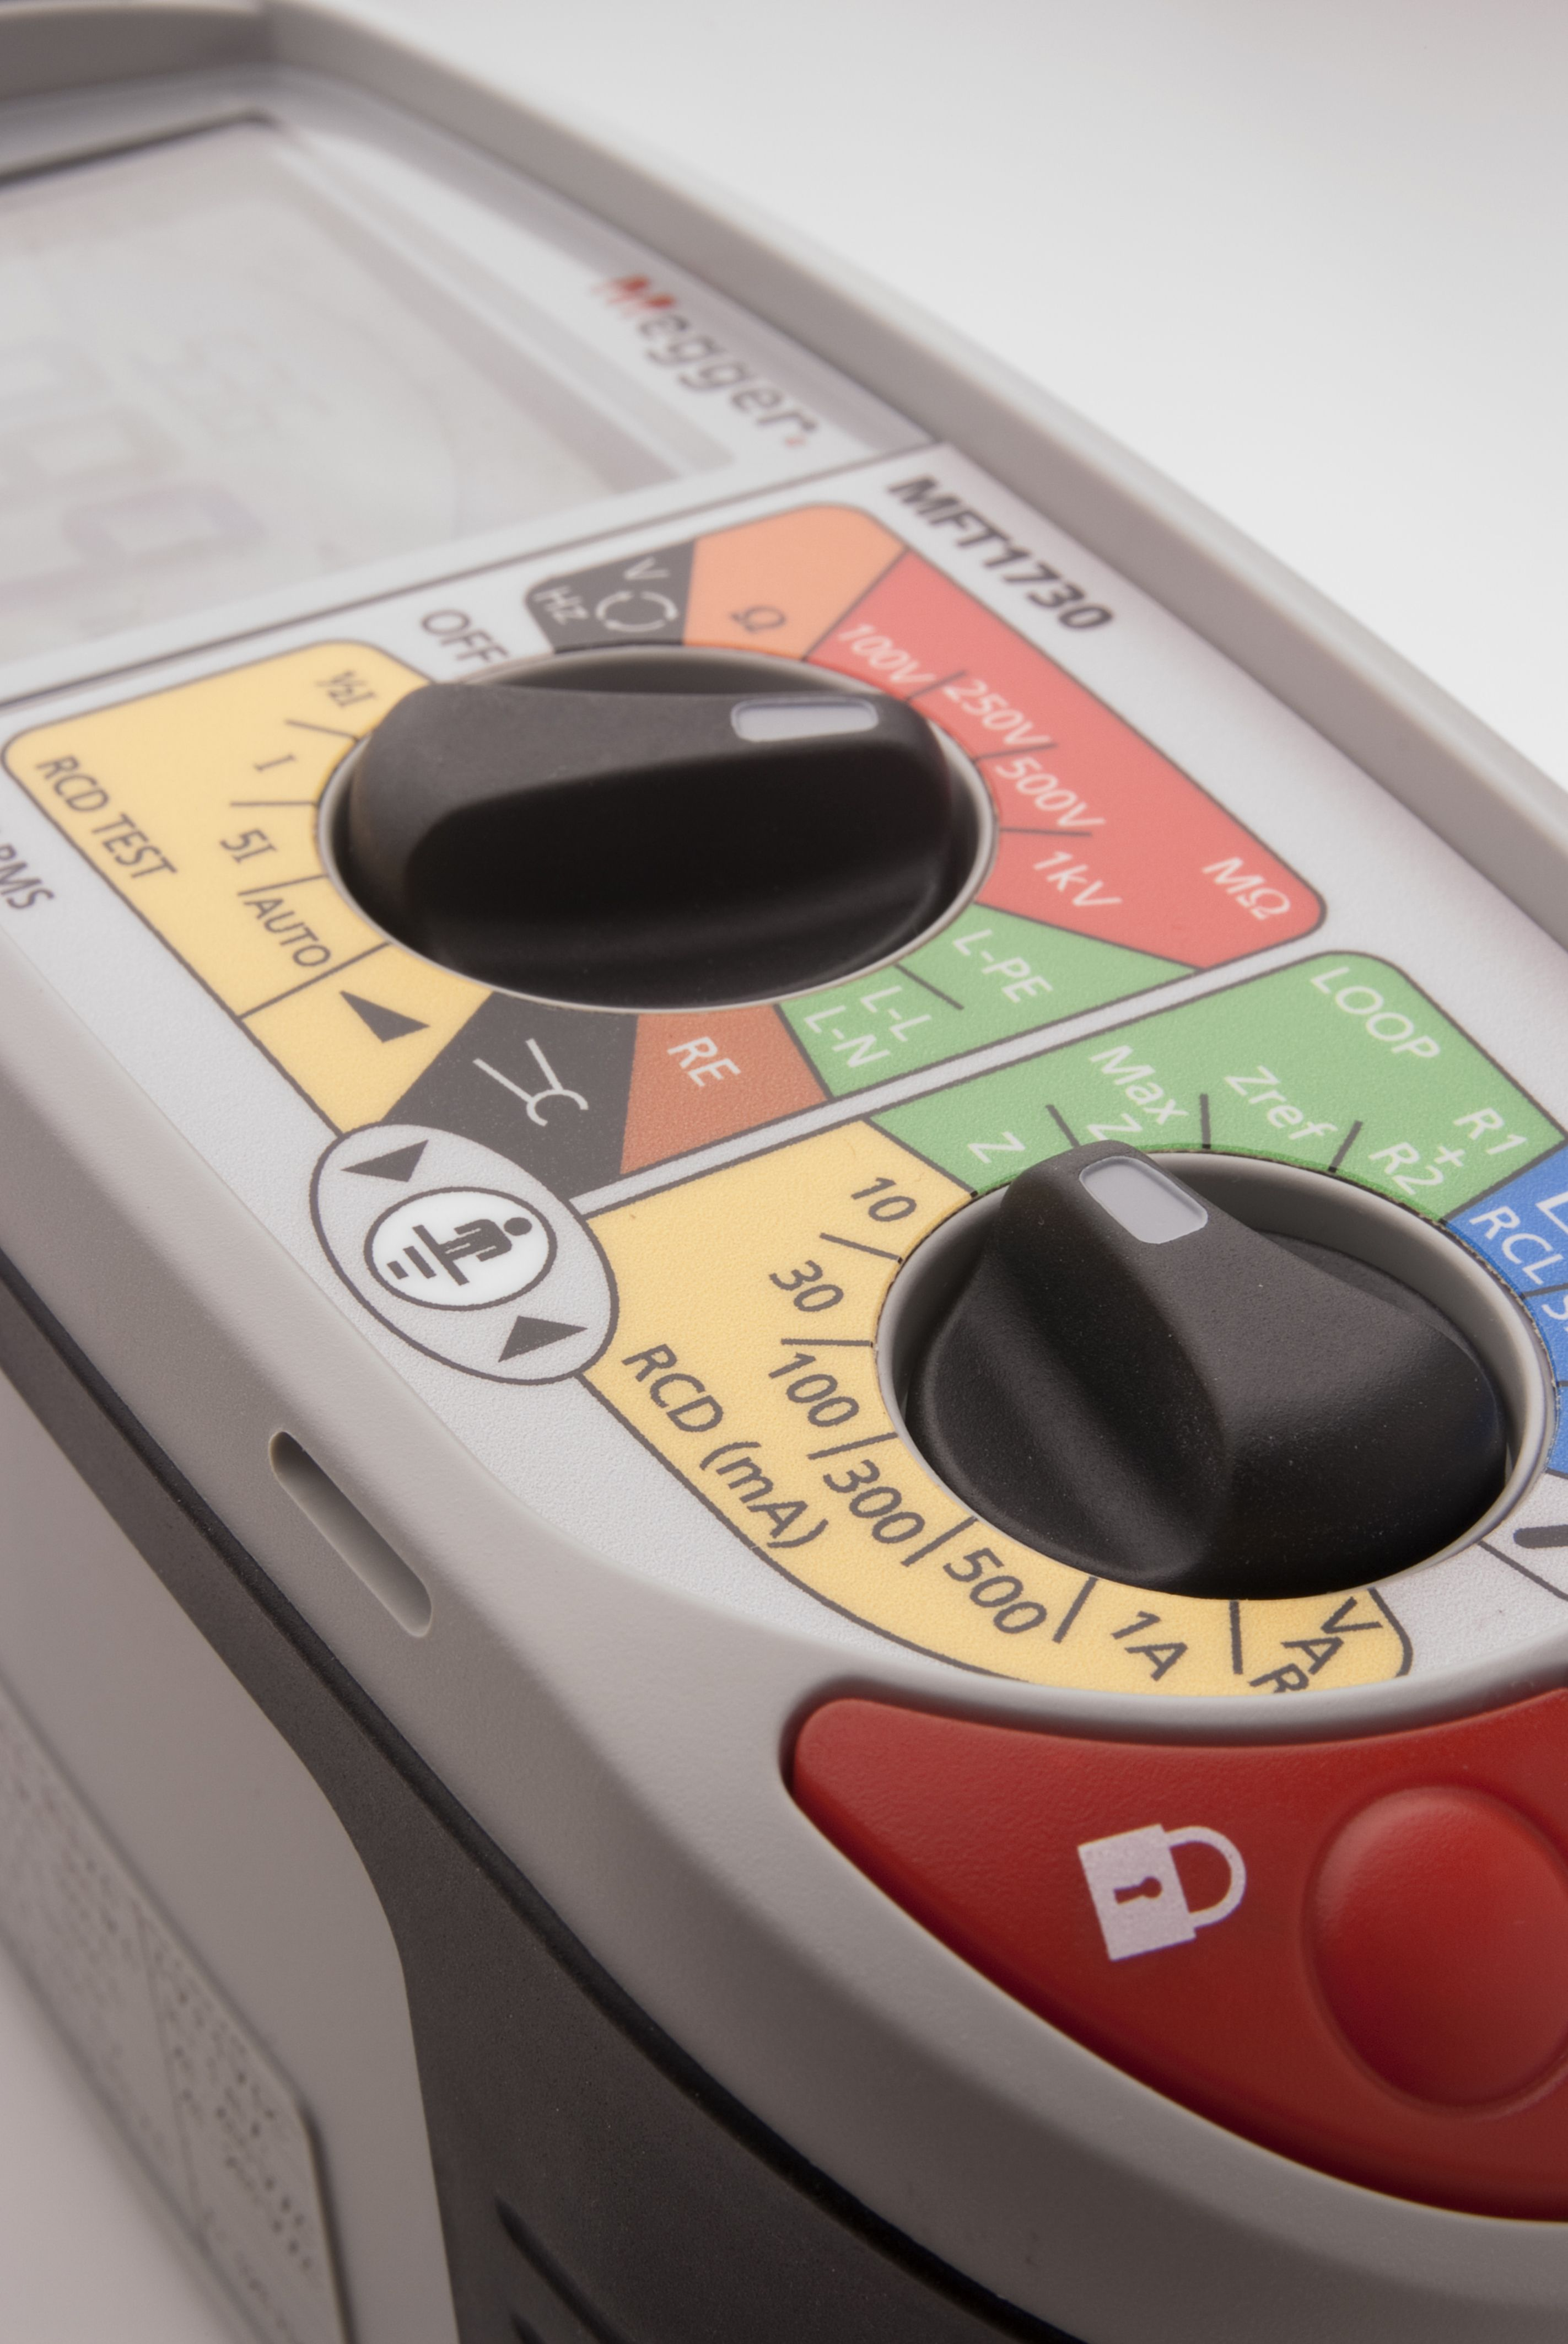 Megger Mft1730 Multifunction Tester For Checking And Certifying Uk Electrical Wiring Regulations Installations To The Edition